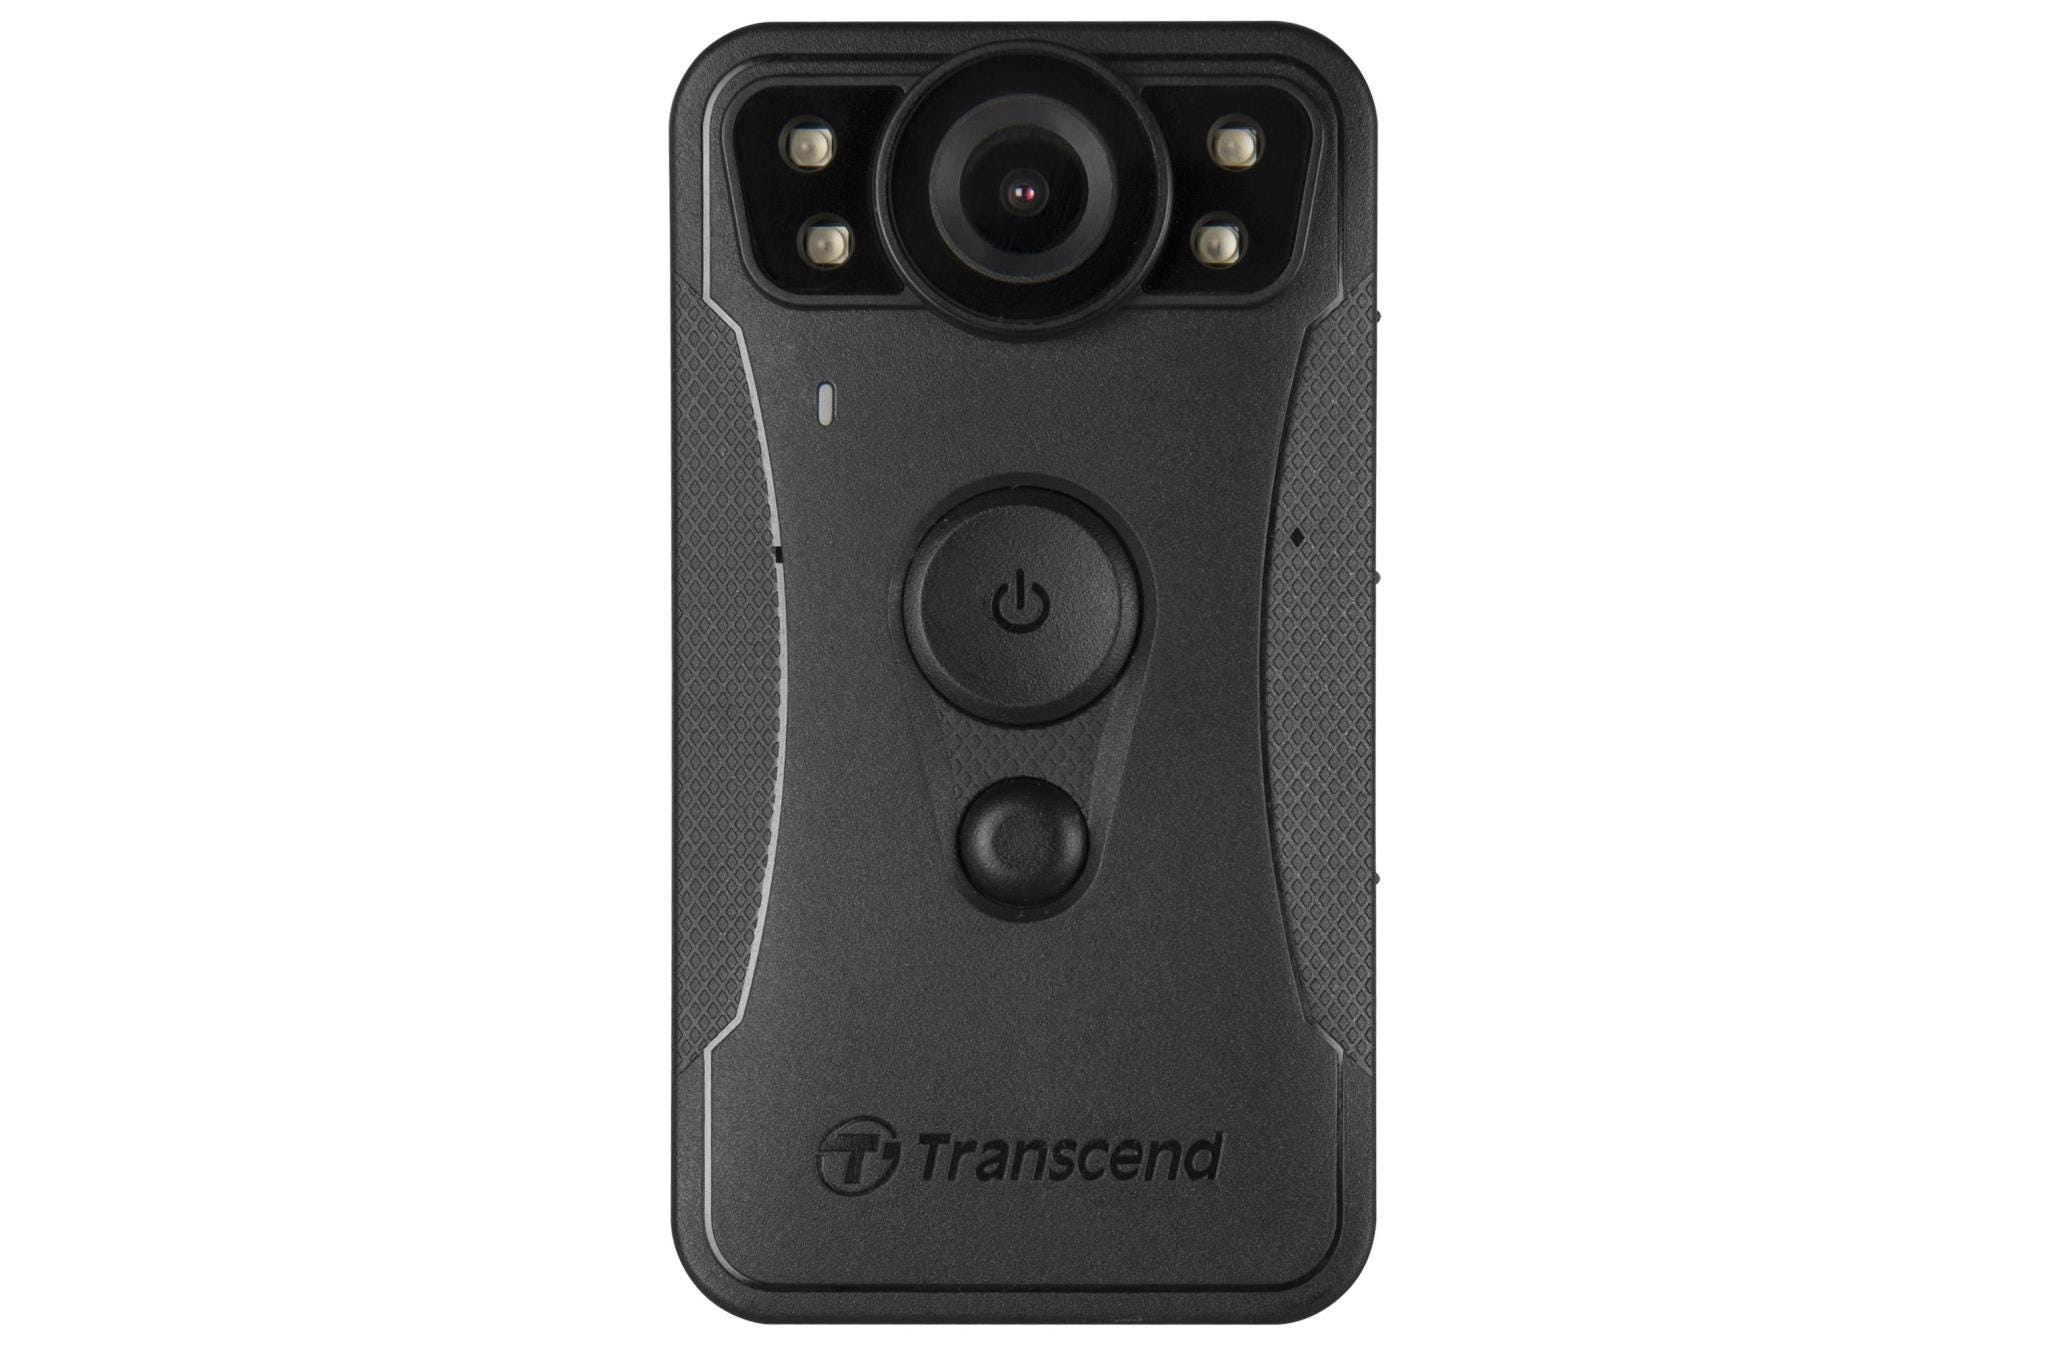 Transcend DrivePro 30 Body Camera - 64GB, Black